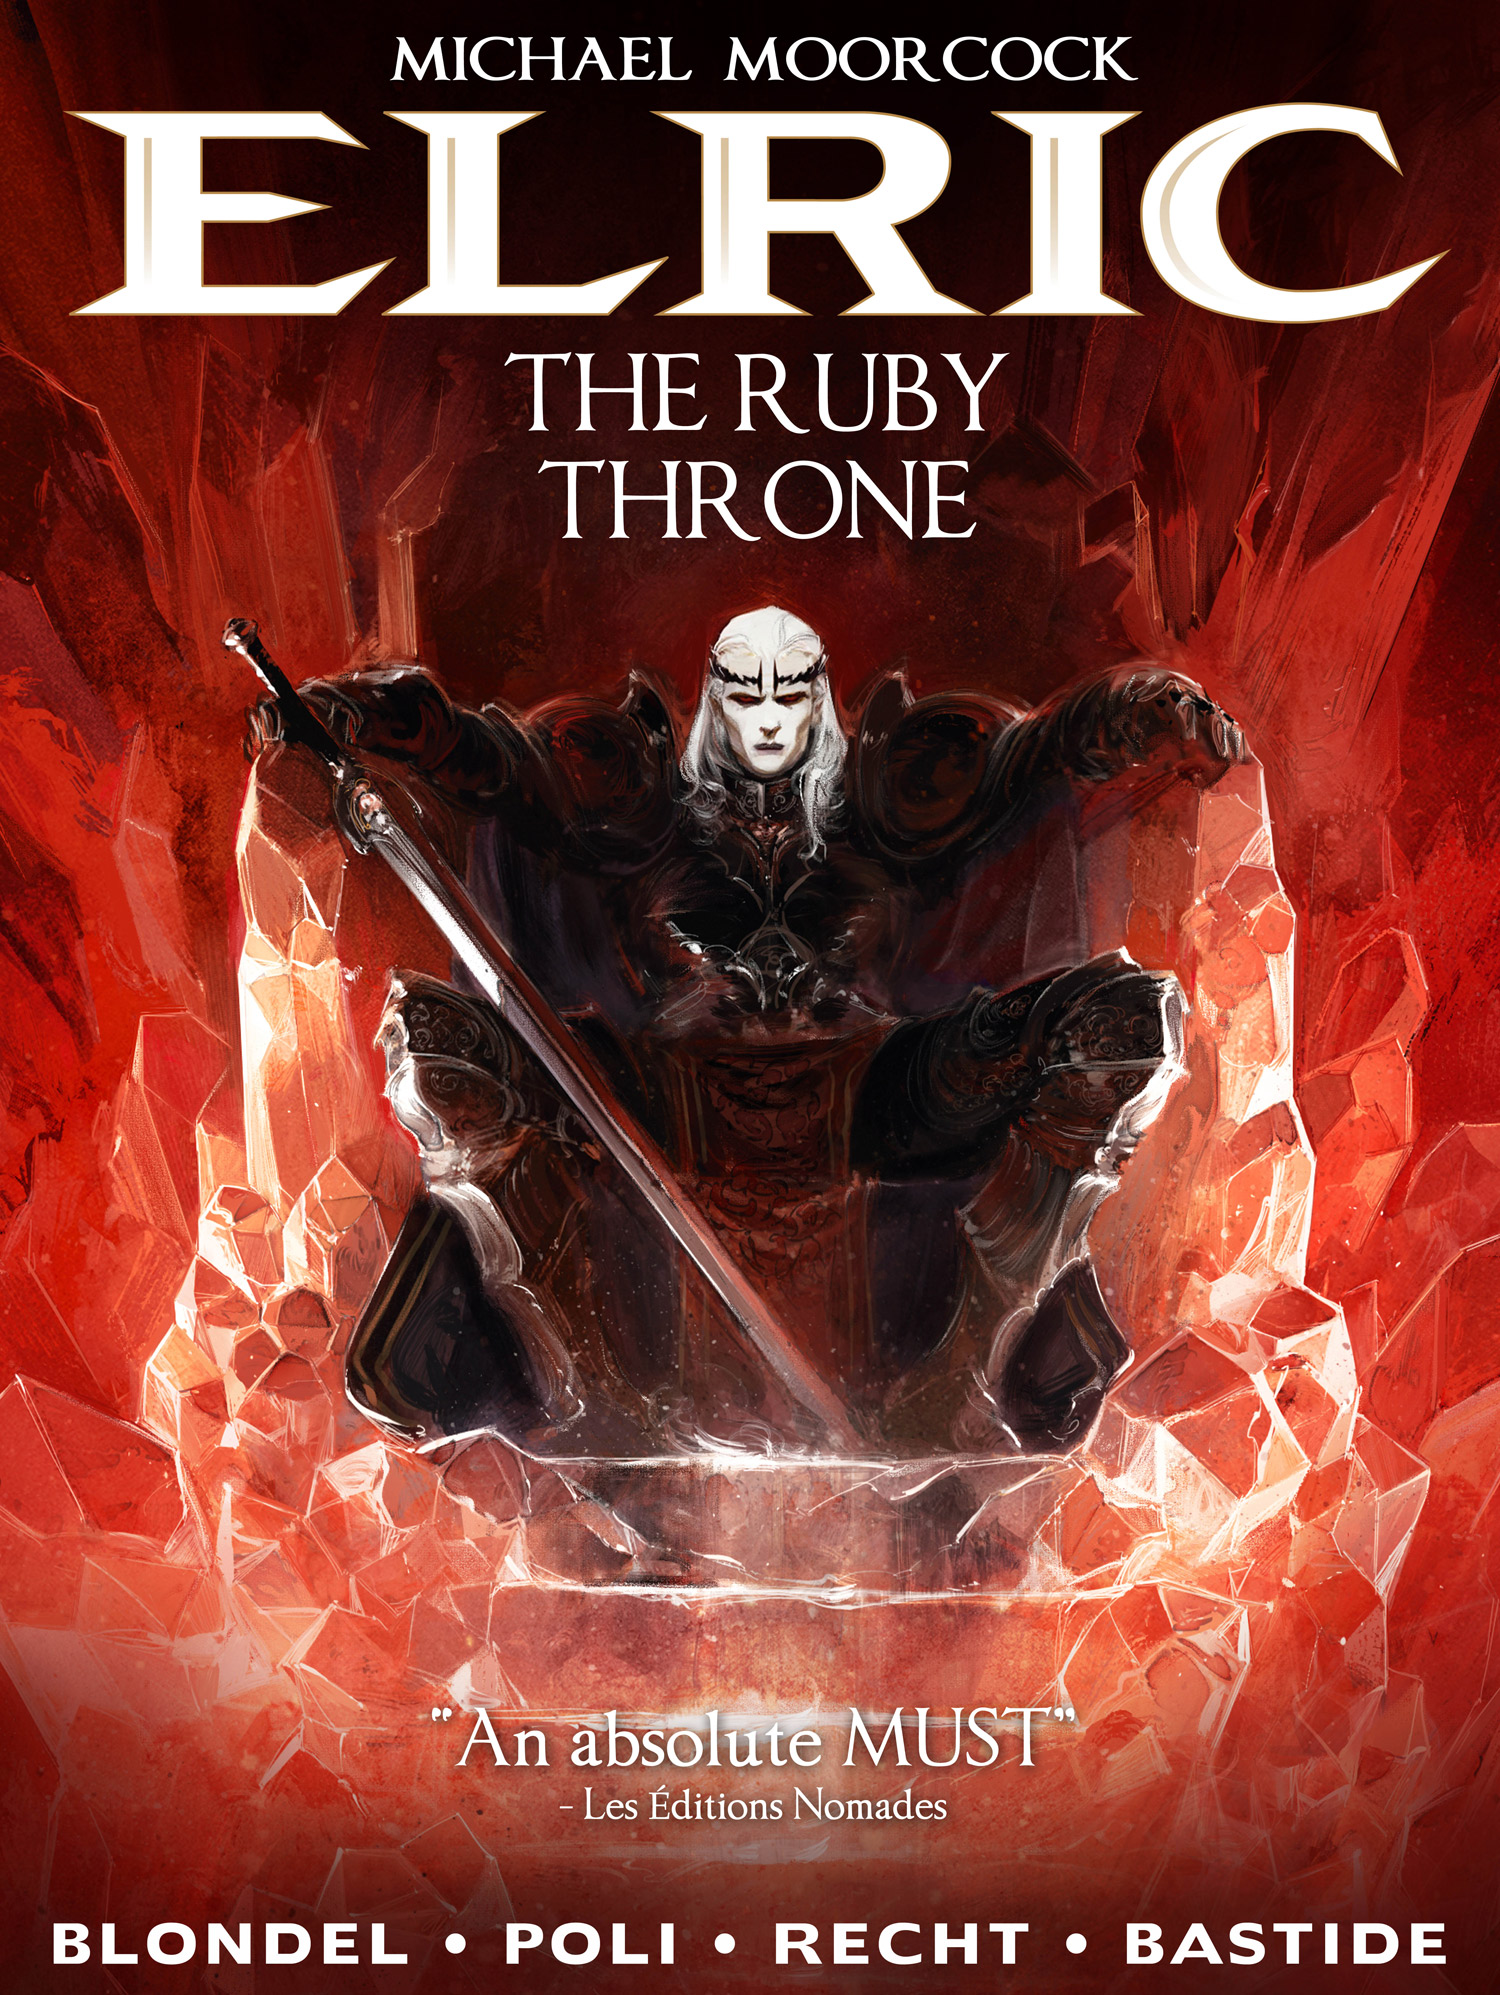 Elric-Coverweb.jpg